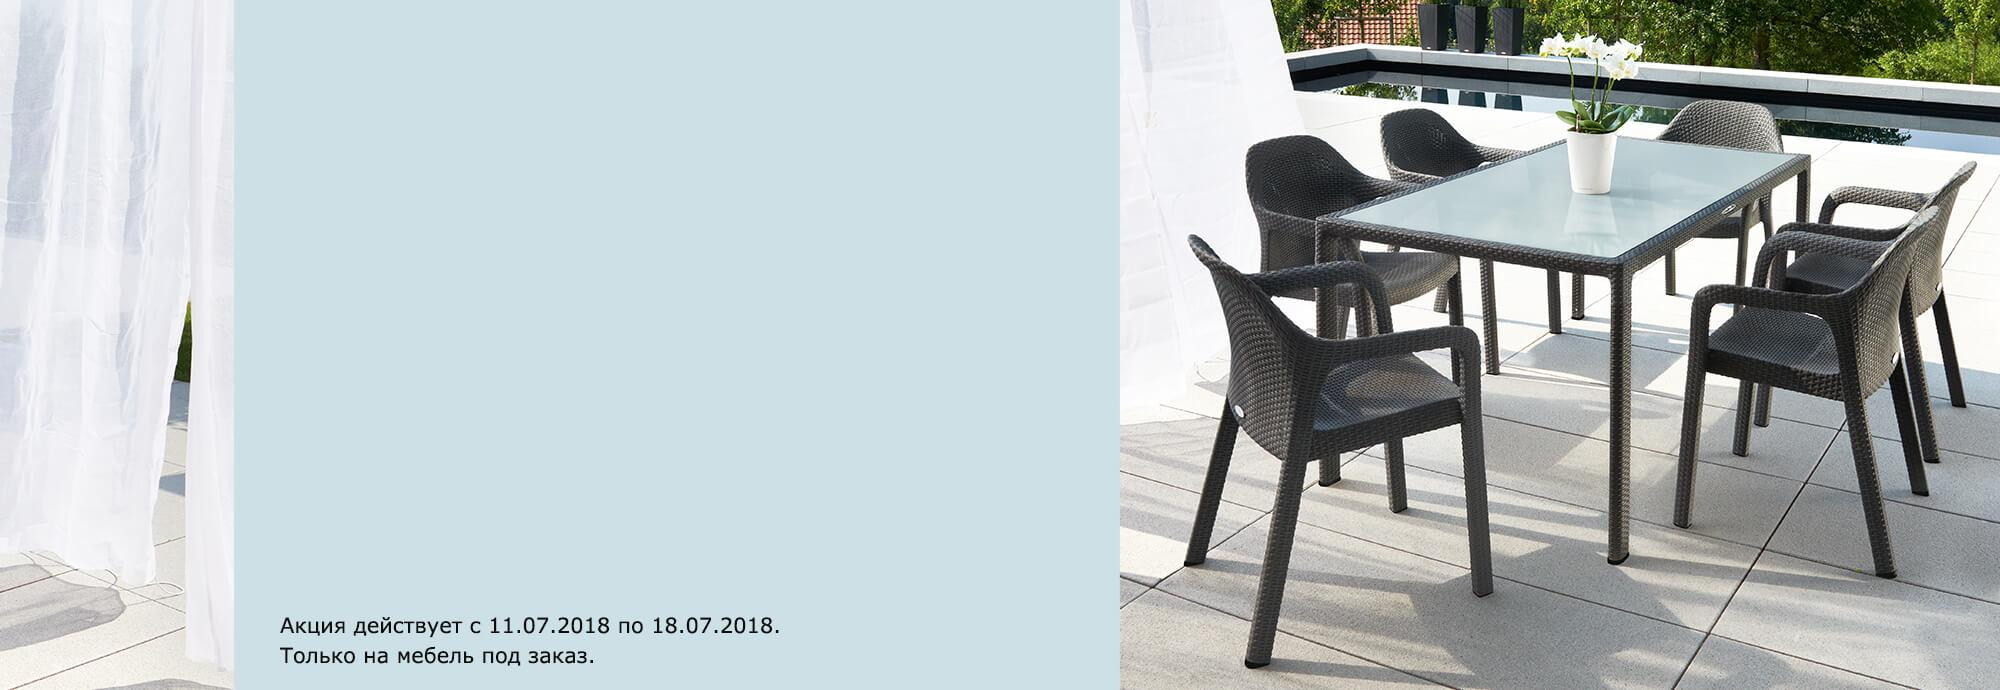 hero_banner_promo_180711_furniture_by